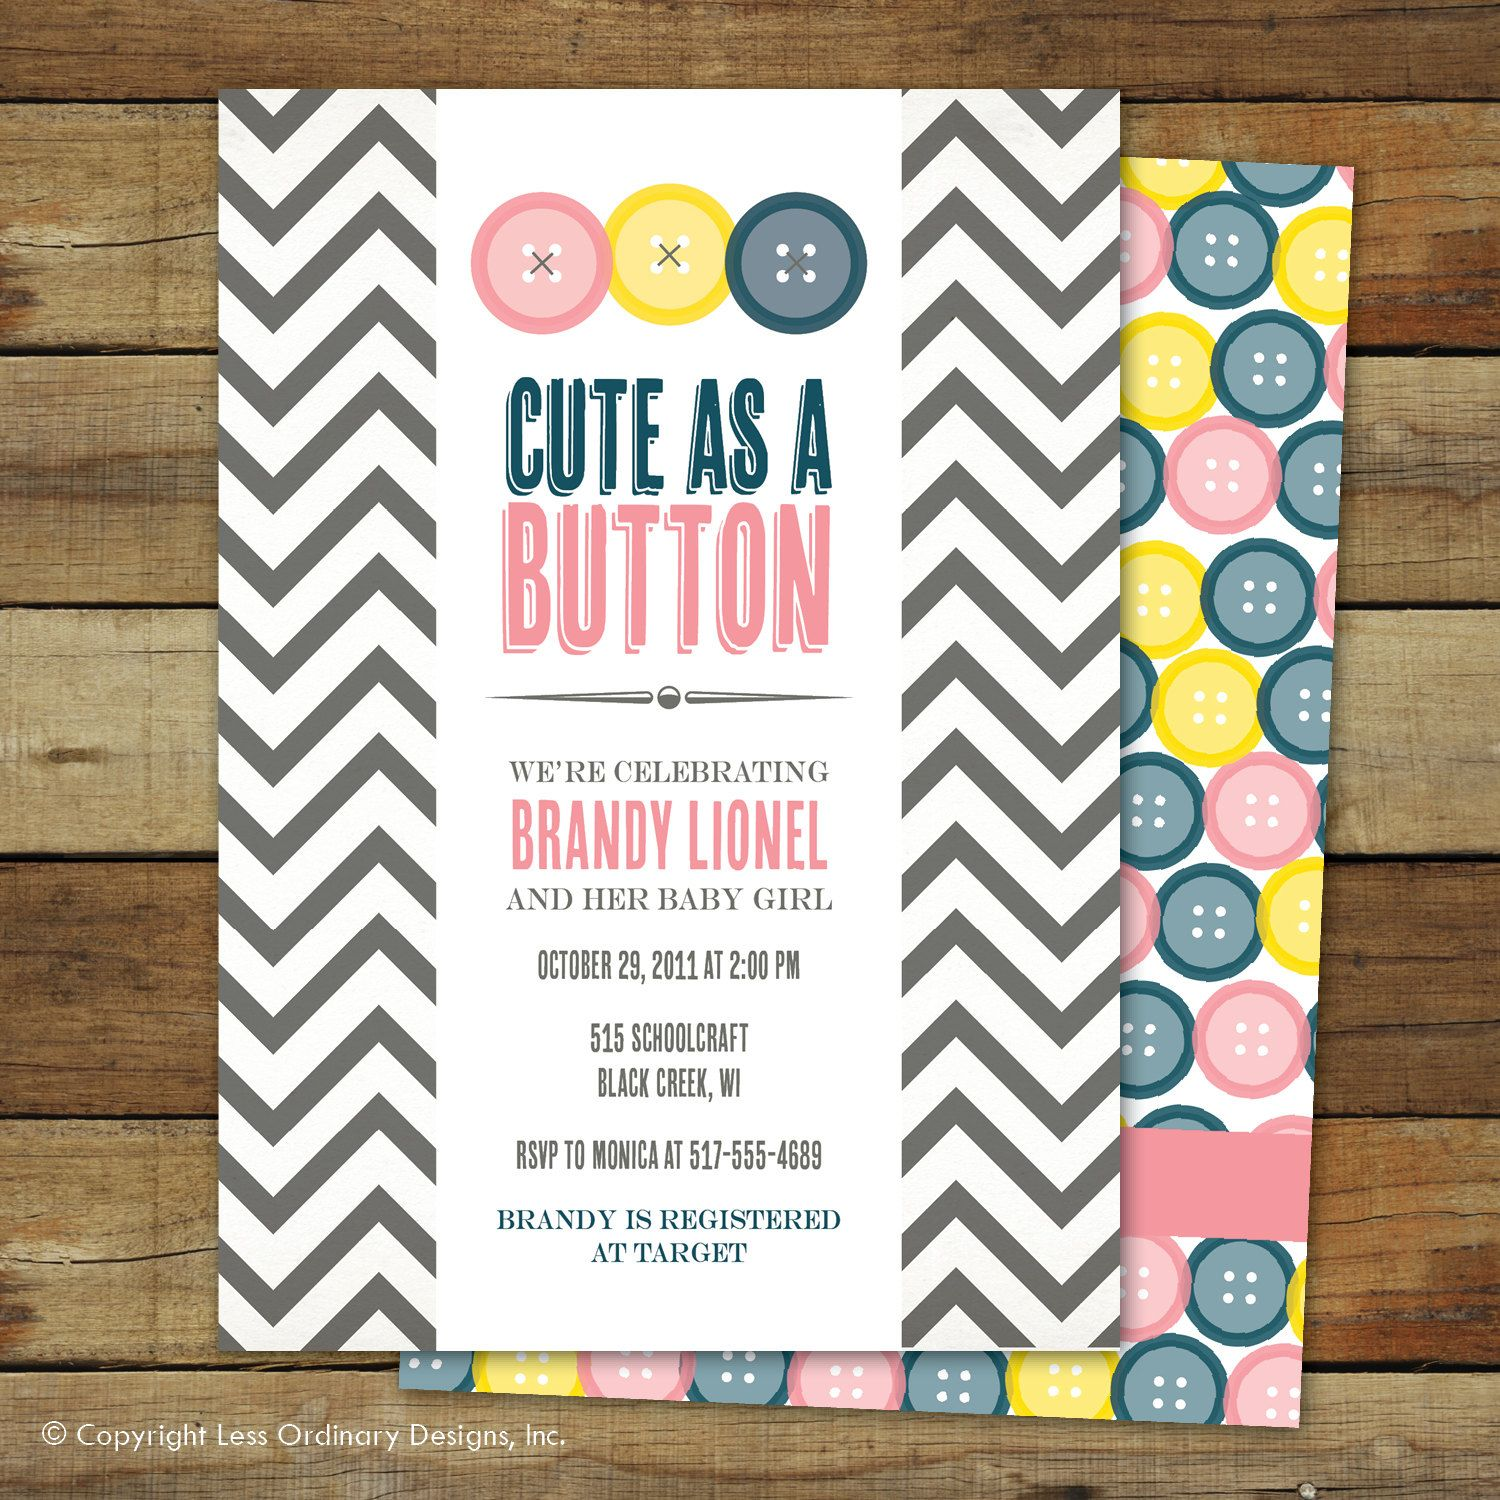 Cute as a button baby shower invitation, baby girl, matching back ...